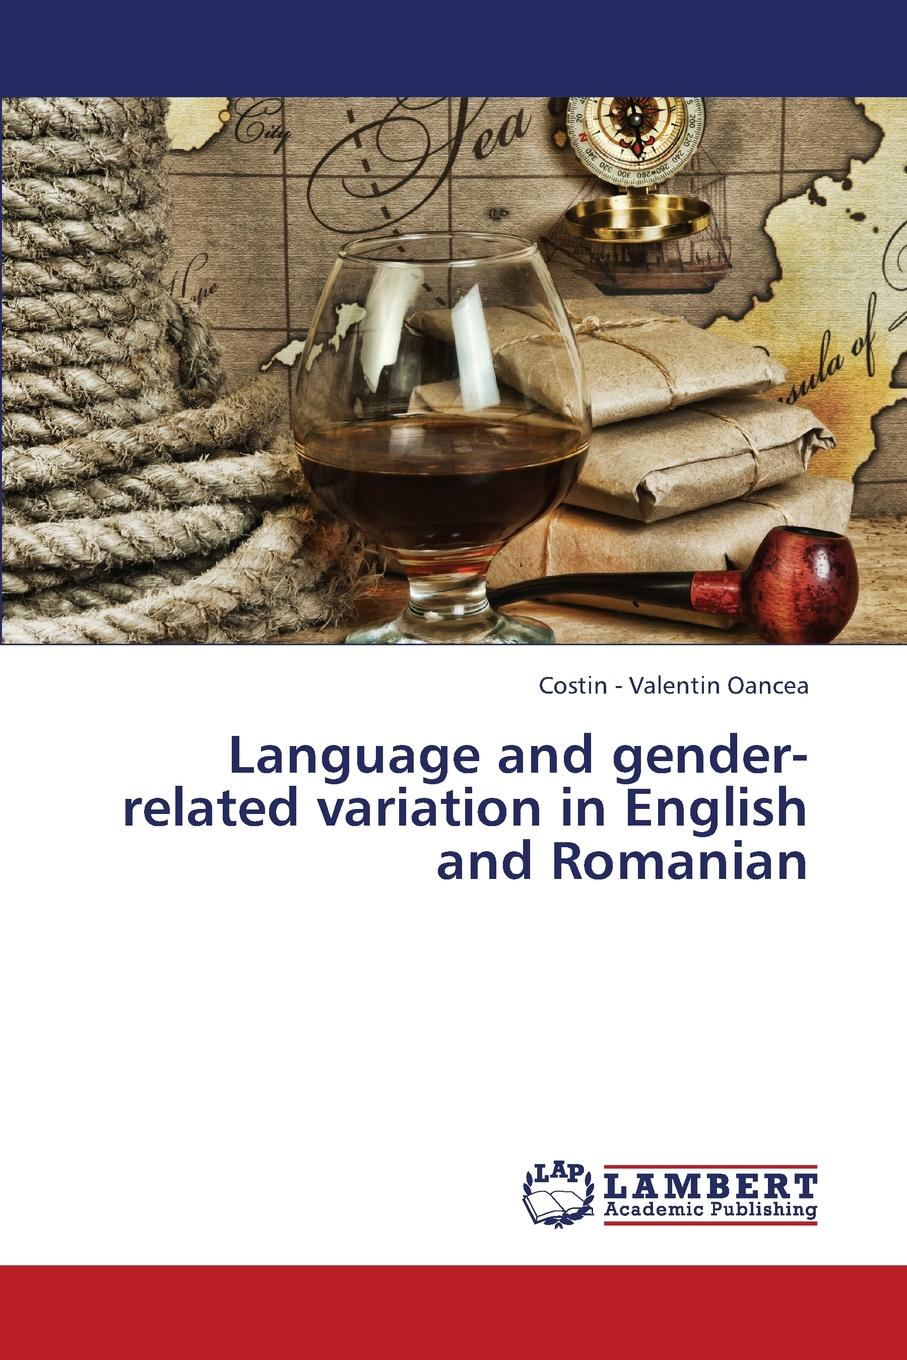 Oancea Costin -. Valentin Language and Gender-Related Variation in English and Romanian natalie schilling the handbook of language variation and change